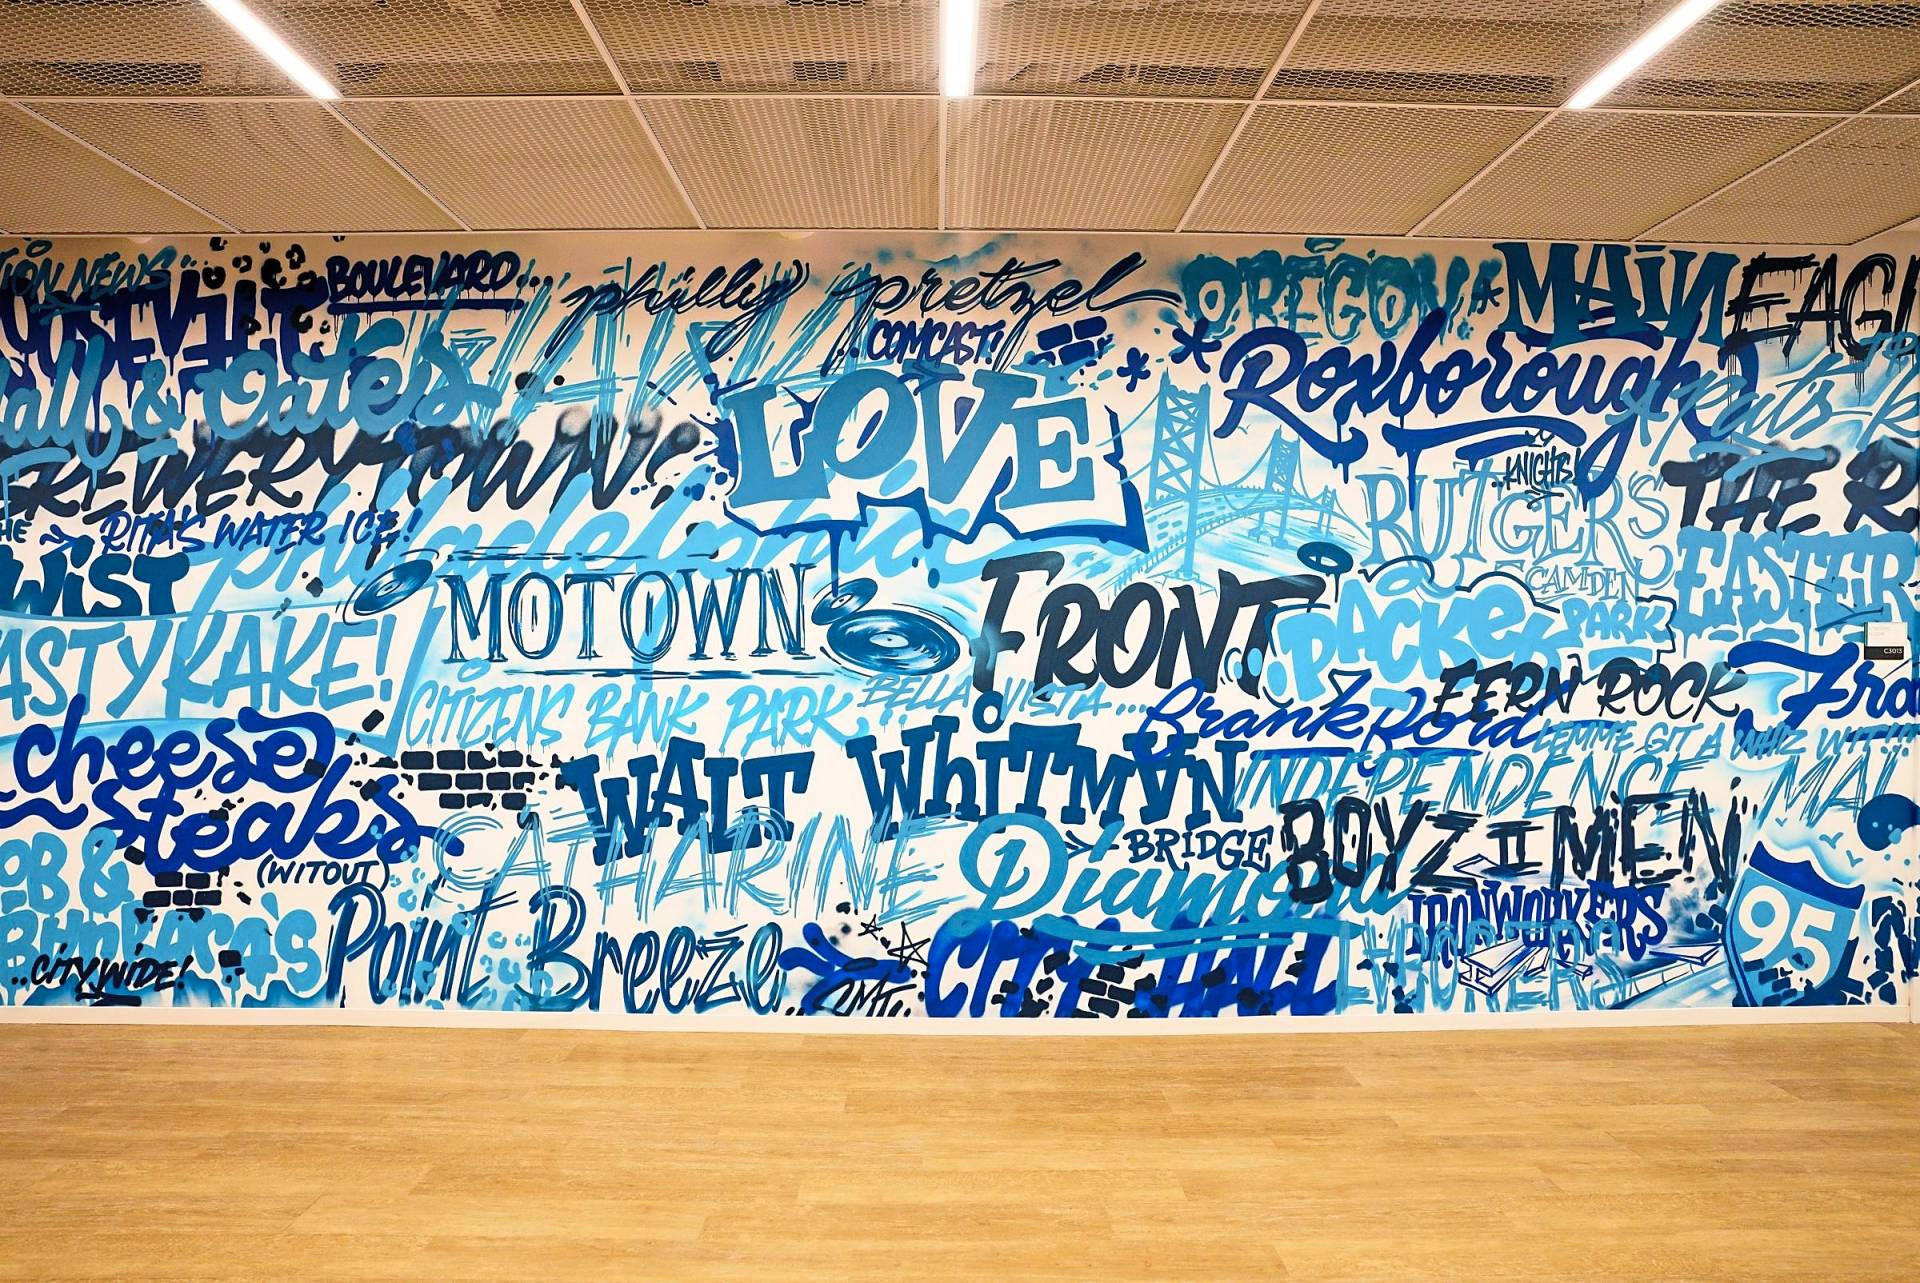 The Comcast Tech Center is filled with art, such as this piece by Glossblack, which was painted freehand and composed in the moment on the day of the installation, and which includes a number of Philadelphia references.